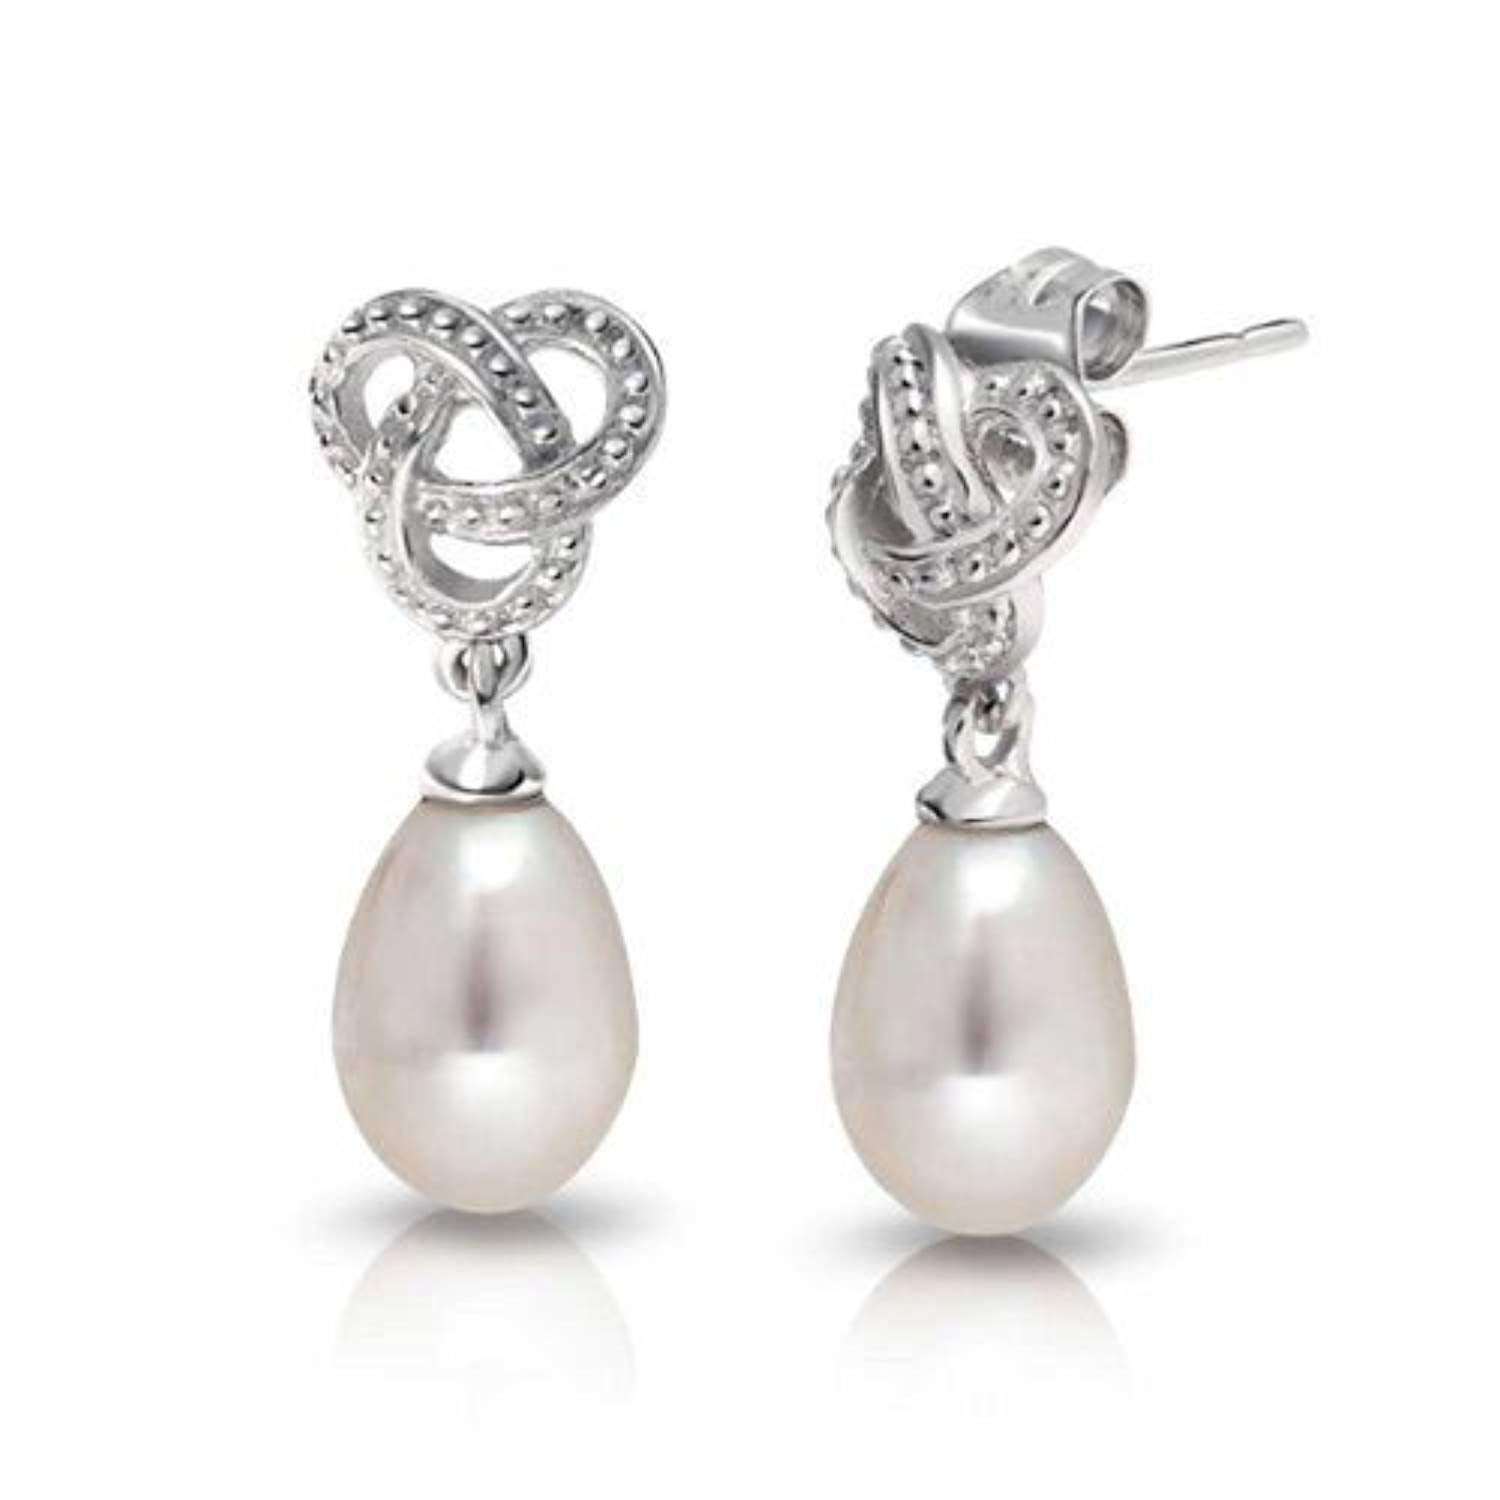 Bridal Love Knot White Simulated Pearl Teardrop Dangle Earrings For Women For Prom 925 Sterling Silver